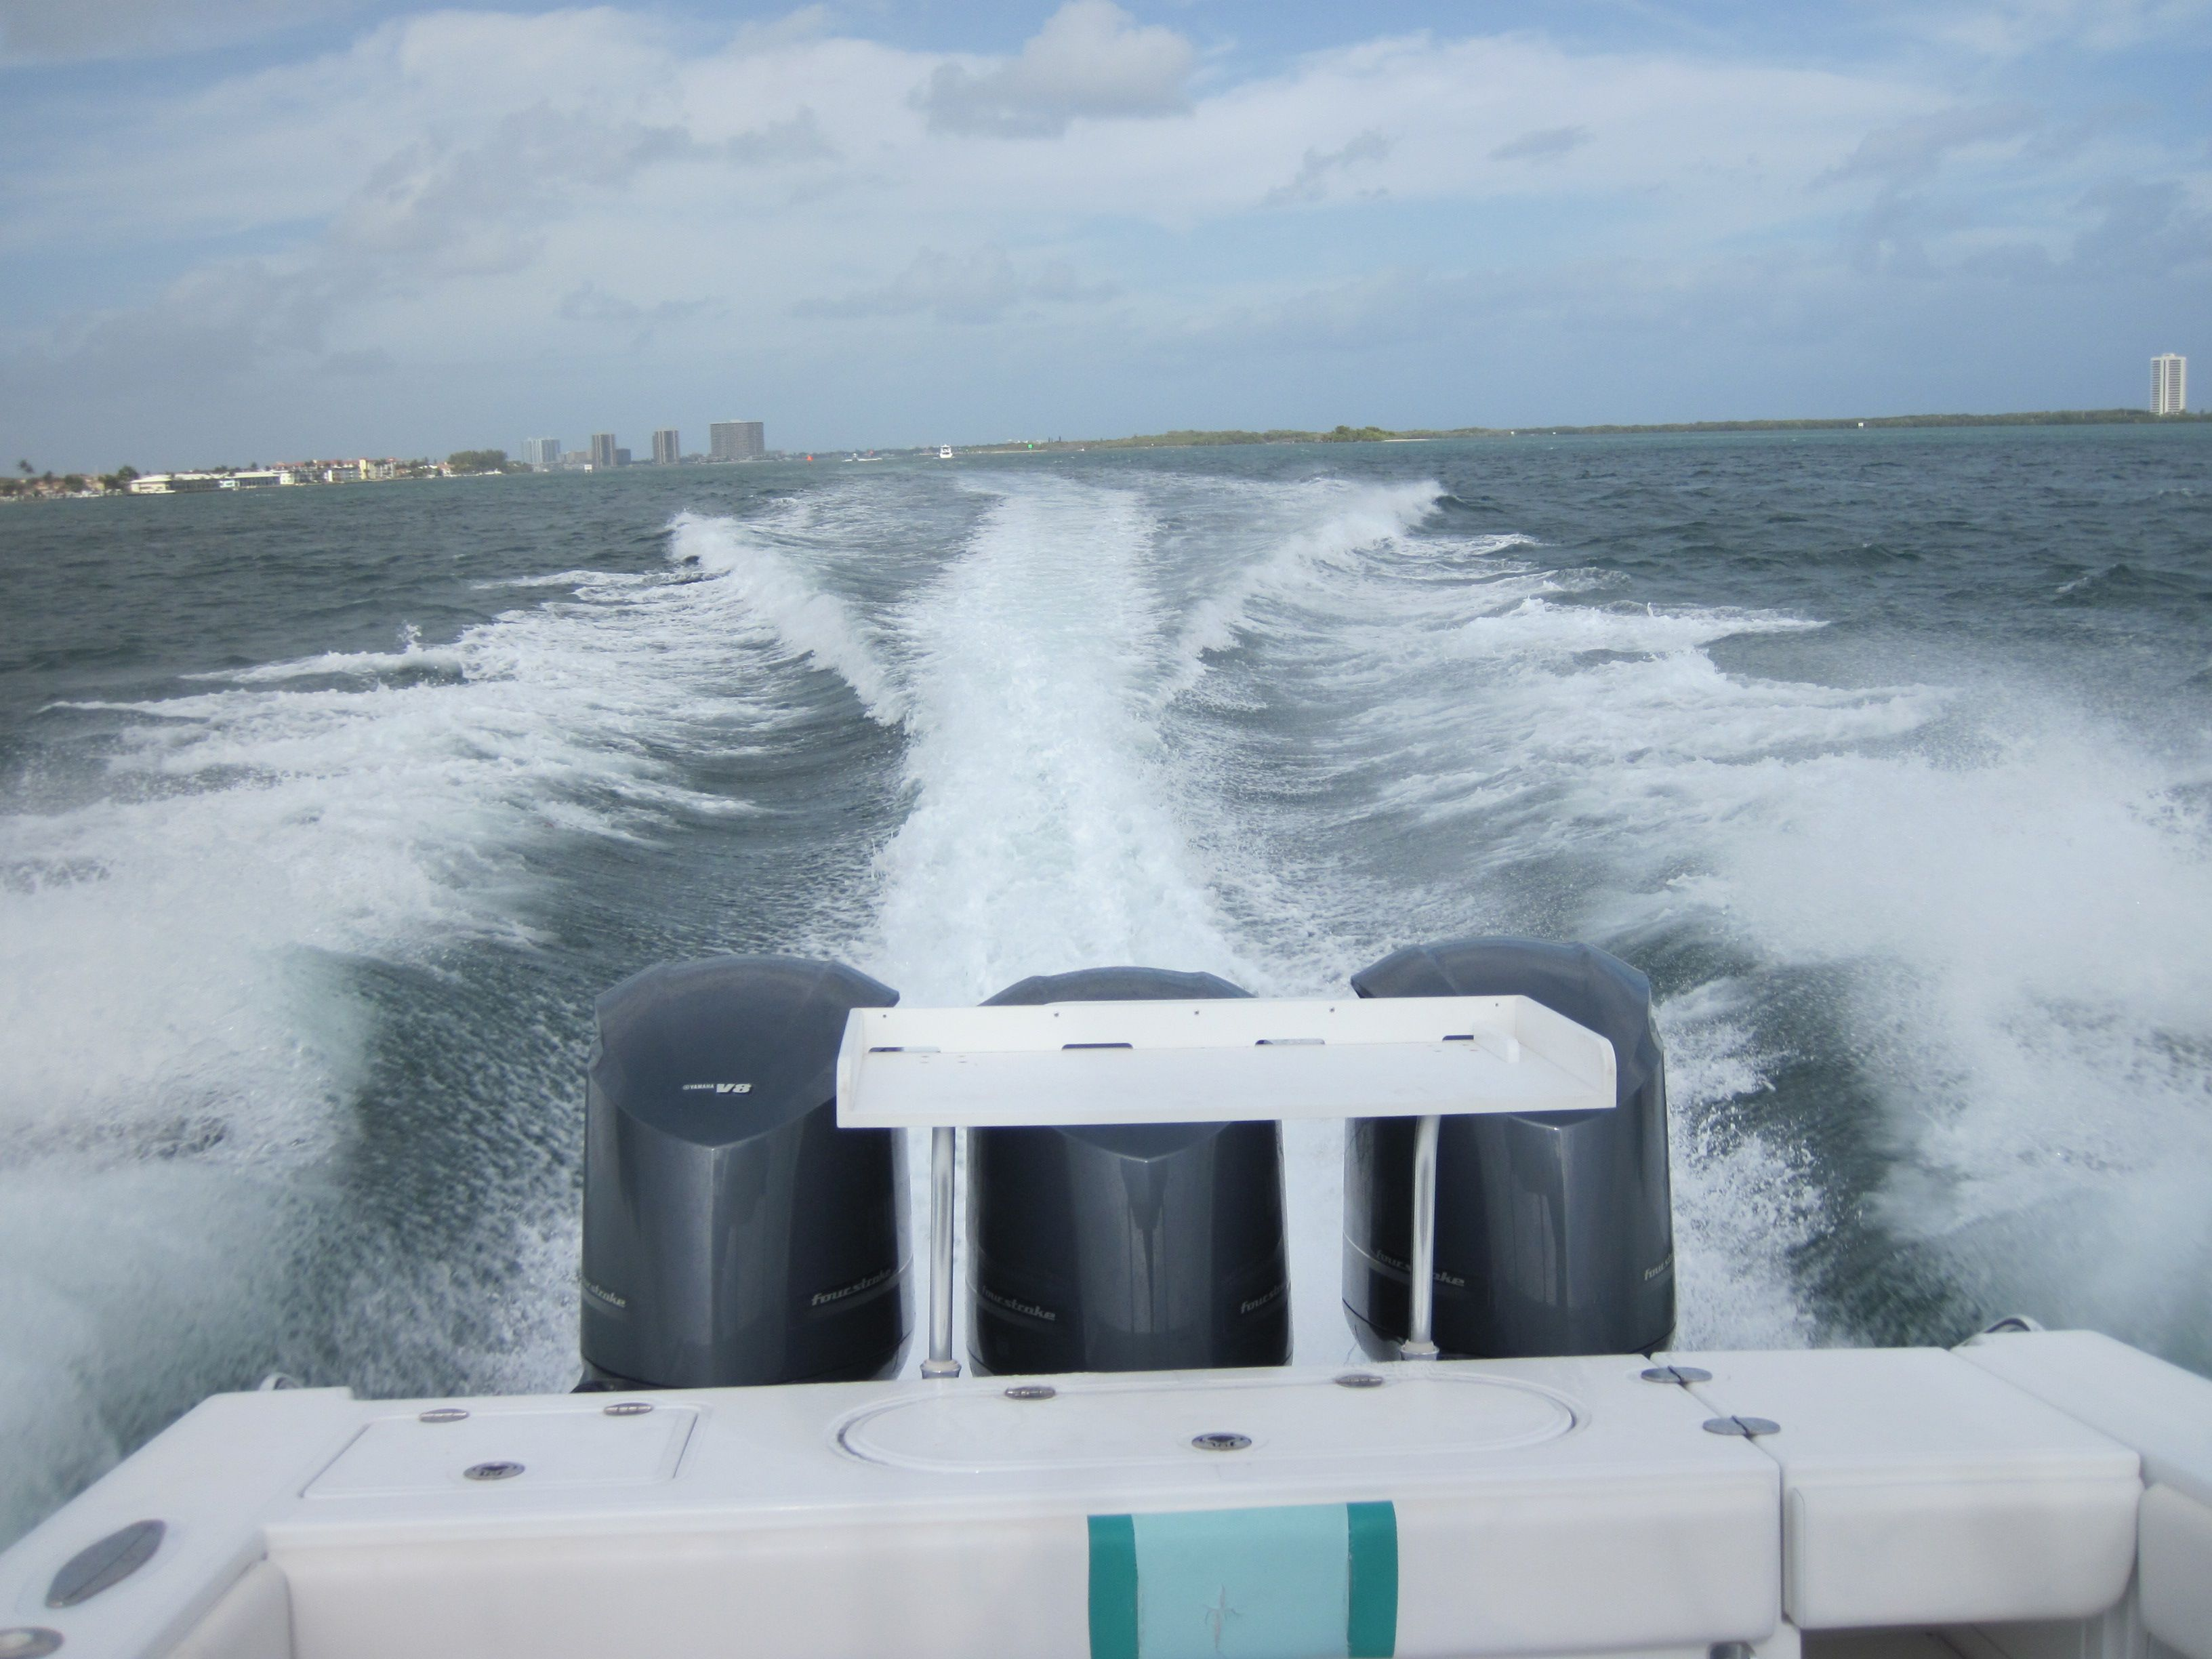 Full prepurchase survey and outboard engine survey on a